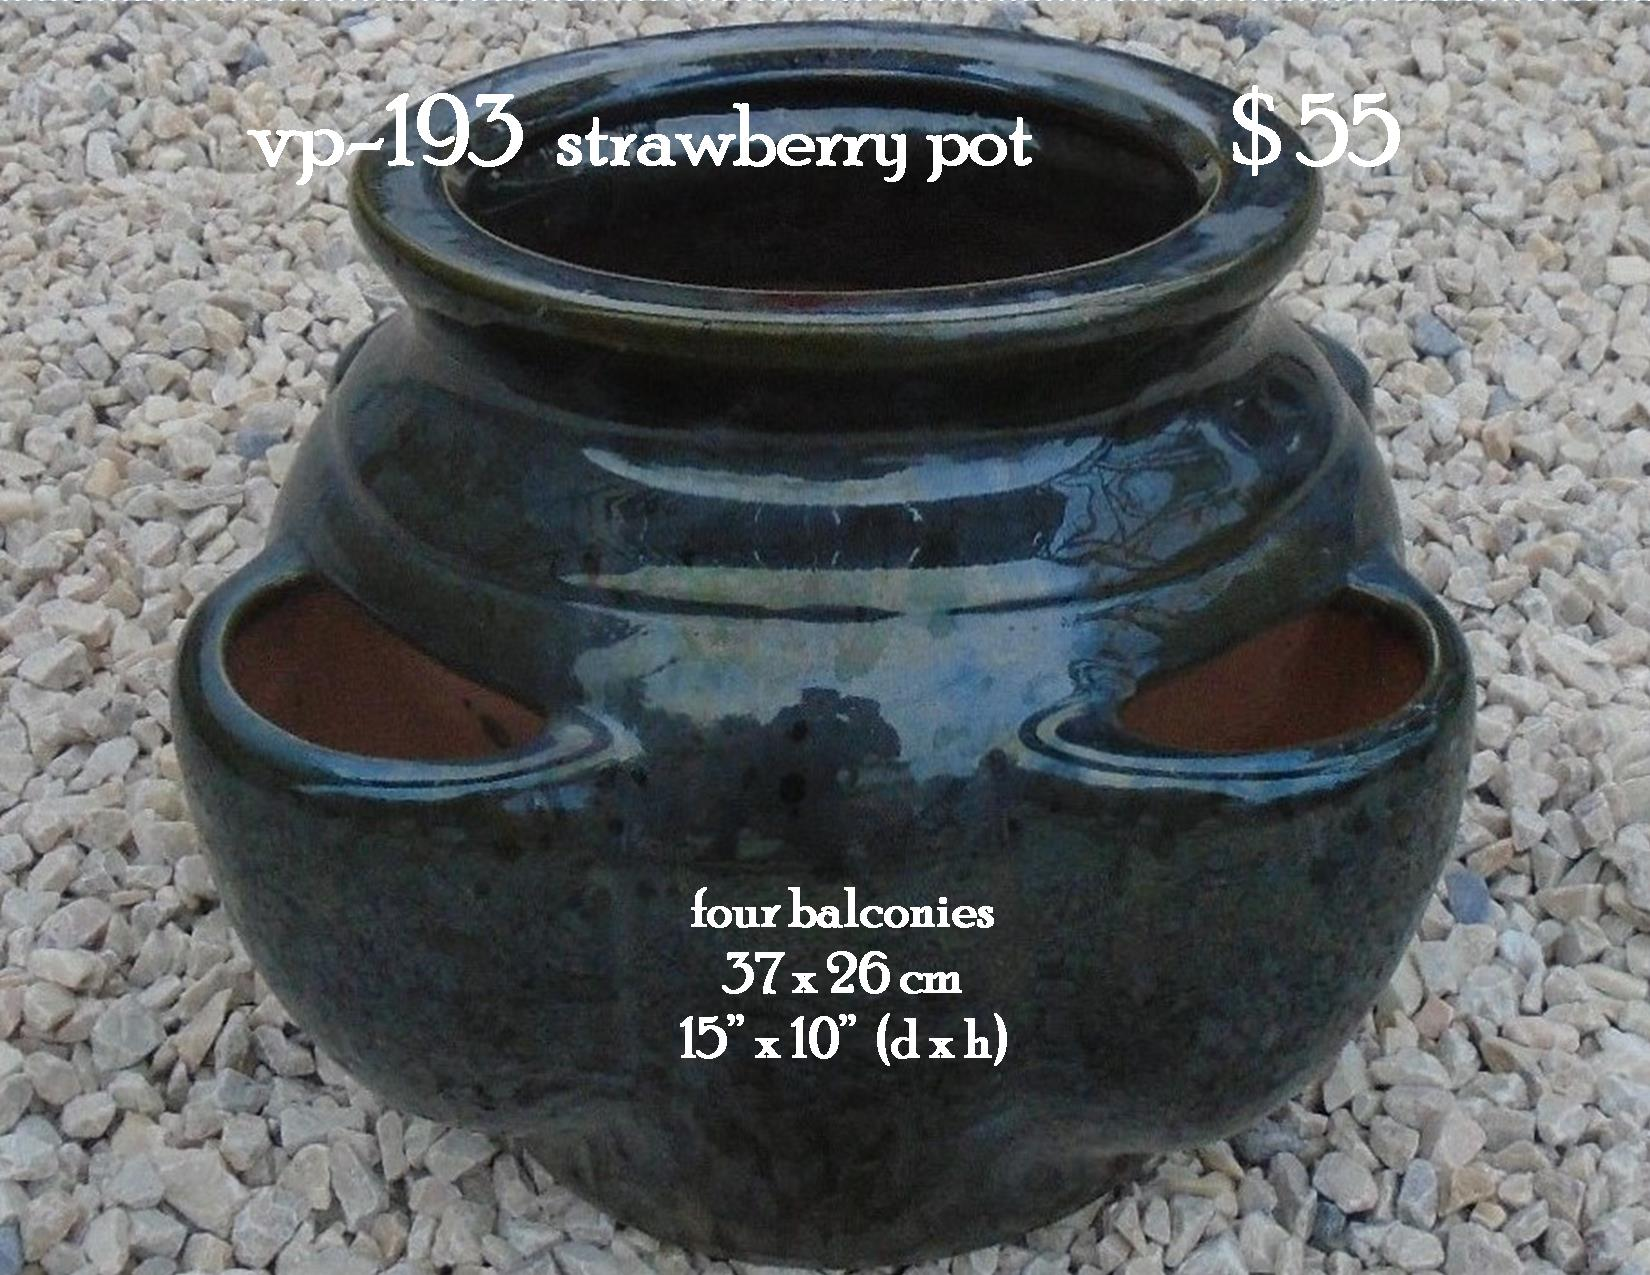 vp-193  strawberry pot